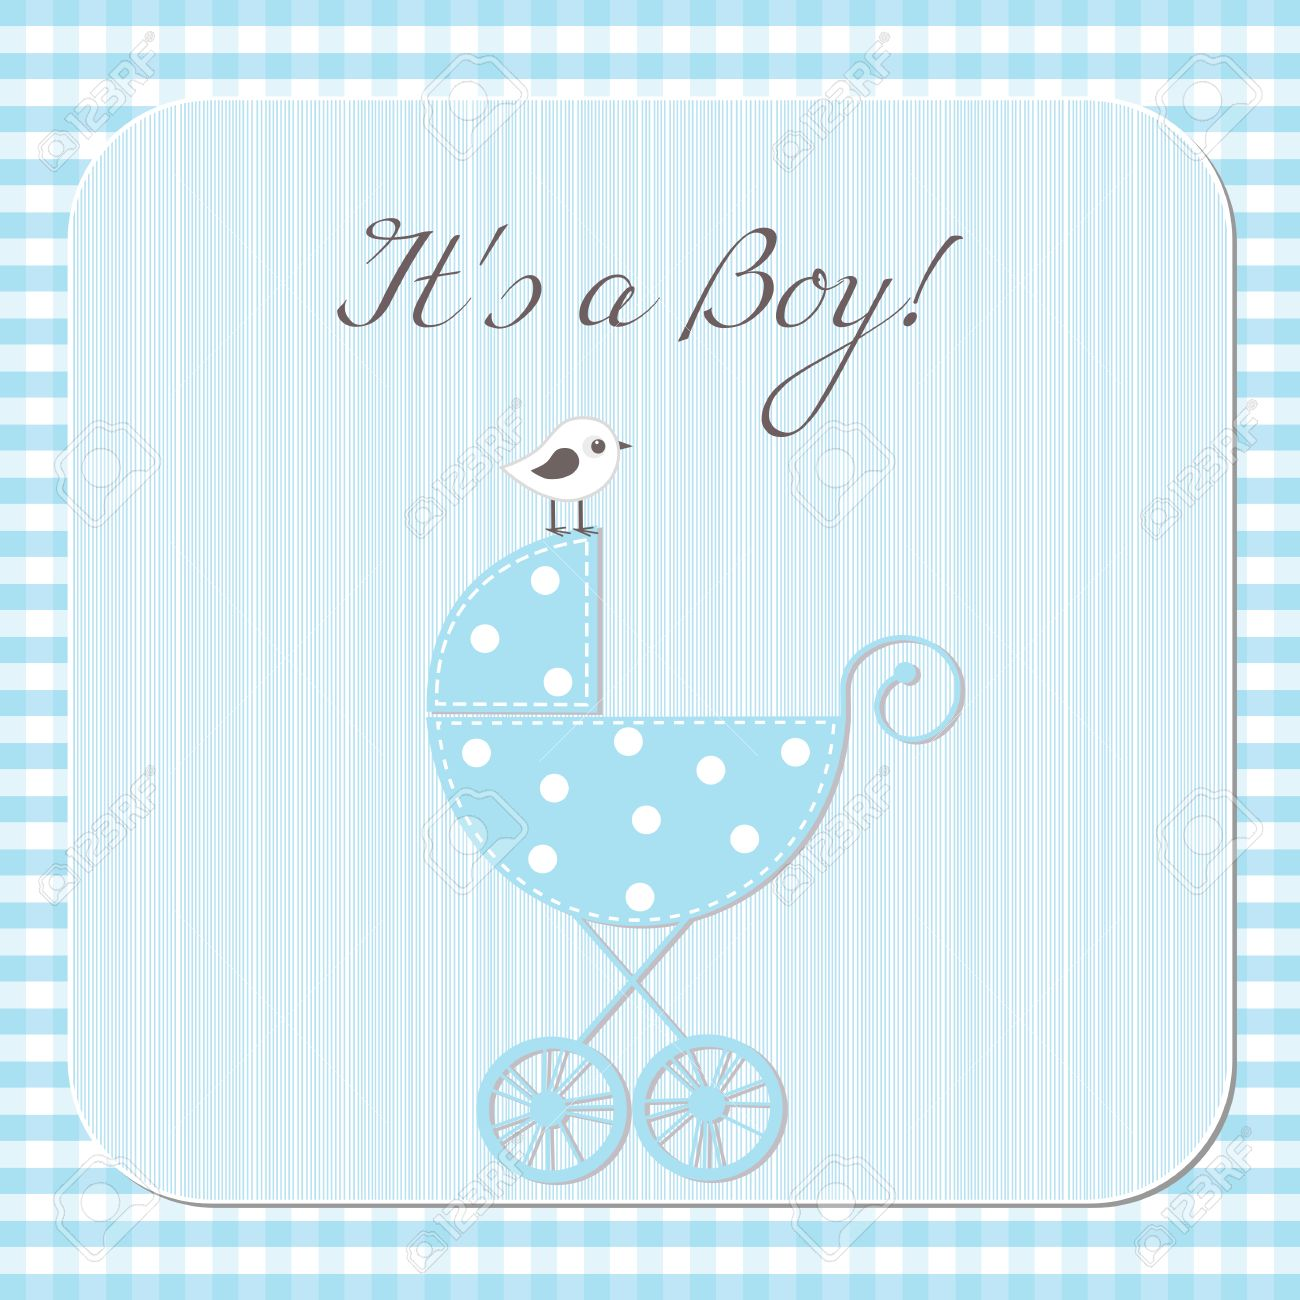 Baby Boy Arrival Announcement Card Royalty Free Cliparts, Vectors ...